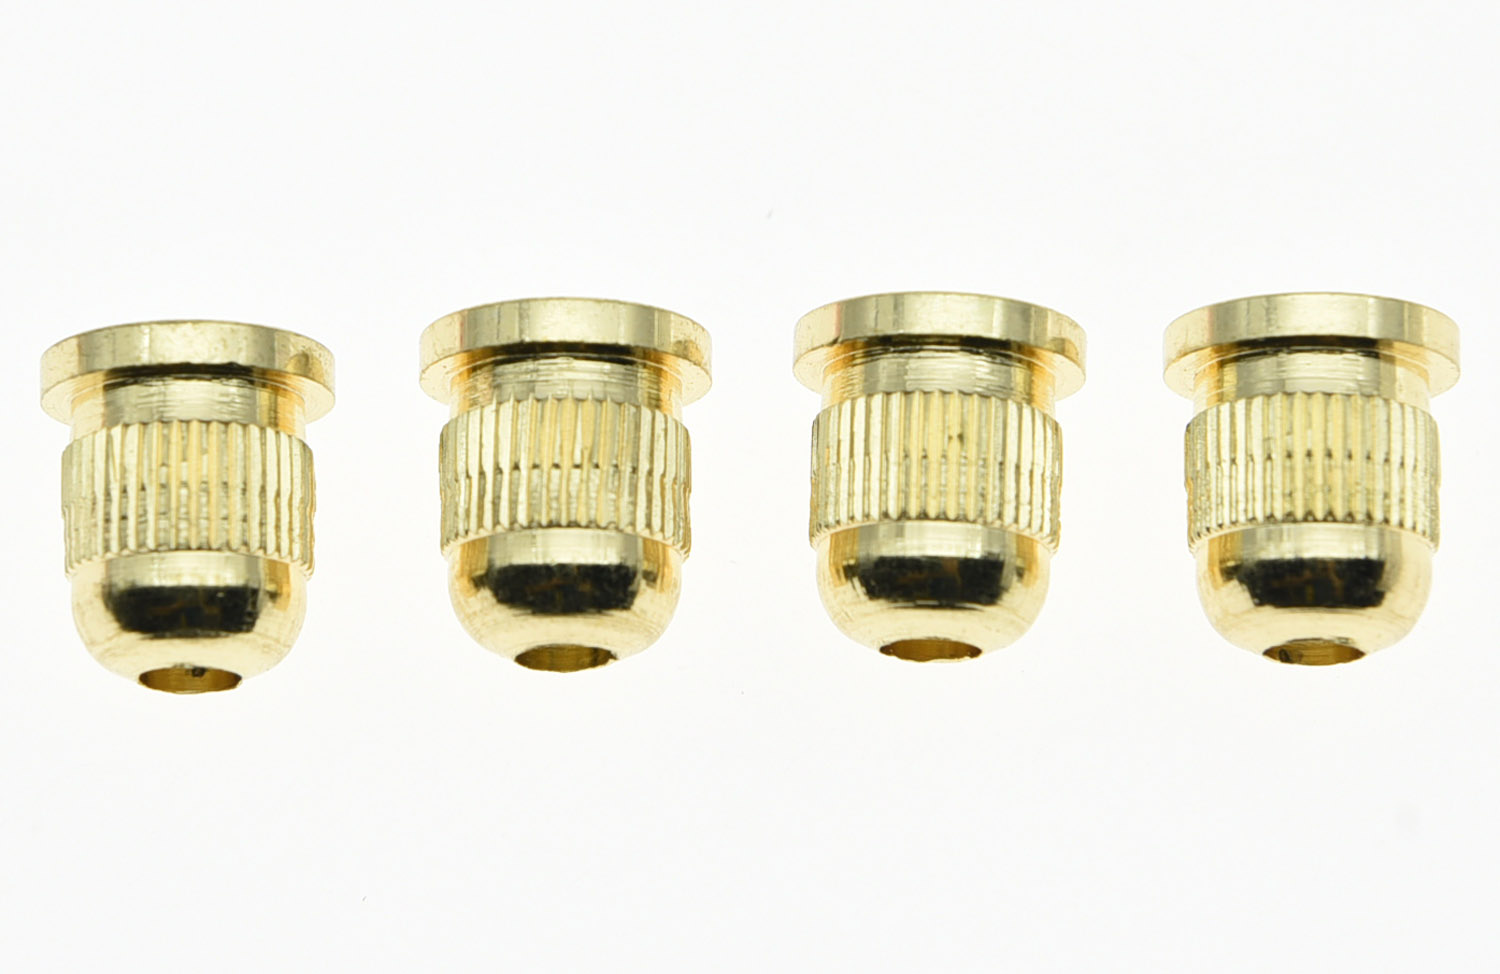 KAISH Set of 4 Gold 3/8 Inch String Mounting Ferrules Fits 4 String Bass Guitar kaish 6x guitar string through body ferrule 1 4 string ferrules for telecaster various colors